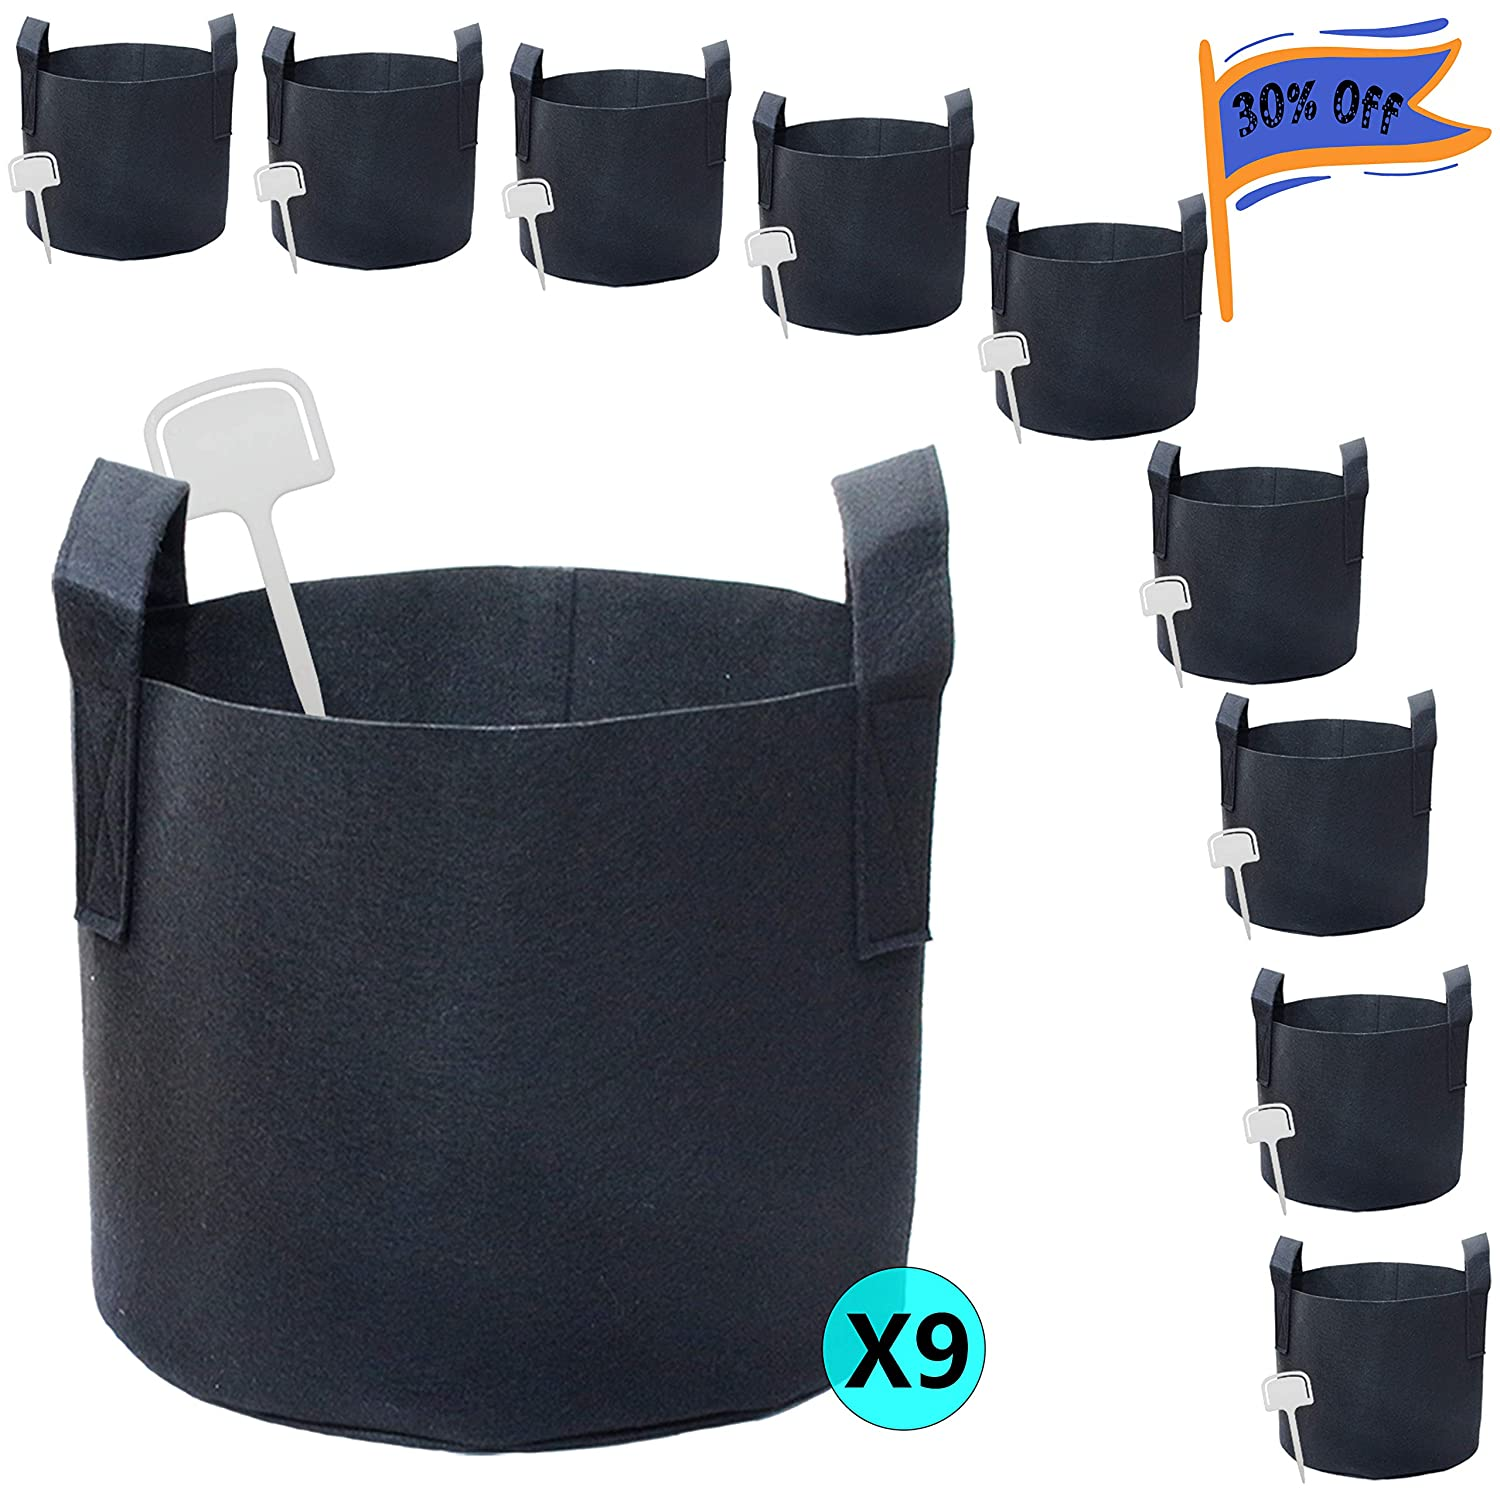 PHYEX 9-Pack 10 Gallon Nonwoven Grow Bags, Aeration Fabric Pots with Durable Handles, Come with 9 Pcs Plant Labels